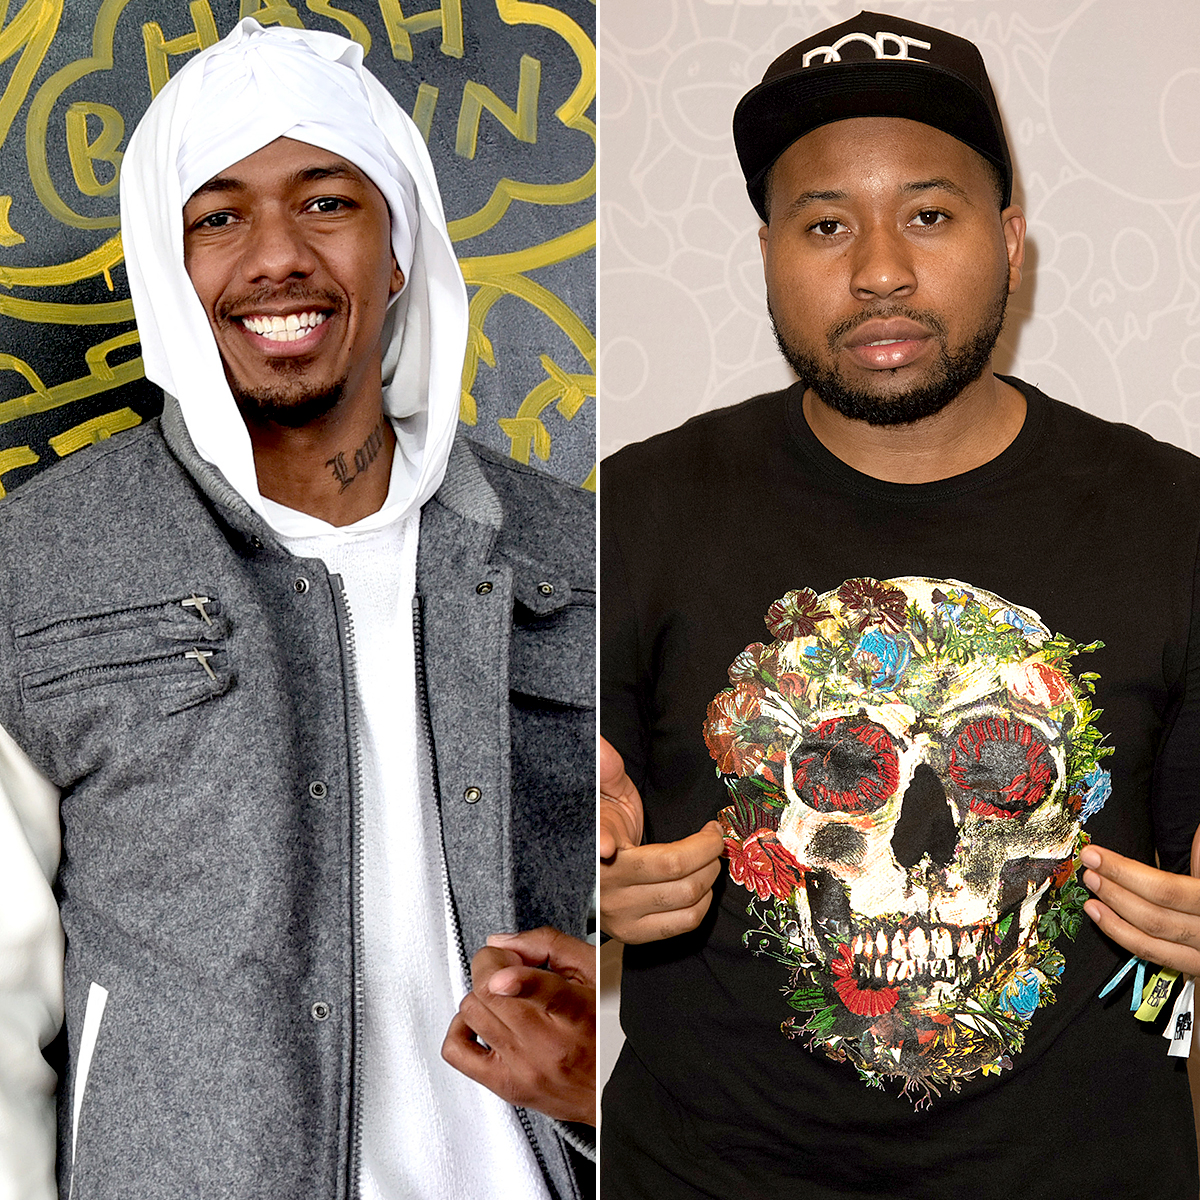 """Nick-Cannon-DJ-Akademiks - In September 2018, Nick Cannon and DJ Akademiks discussed Drake, Pusha T and West's drama, during an Everyday Struggle interview with Complex . DJ Akademiks stated, """"I think Drake smashed Kim K,"""" to which Cannon commented, """"That ain't that far off of a concept."""""""